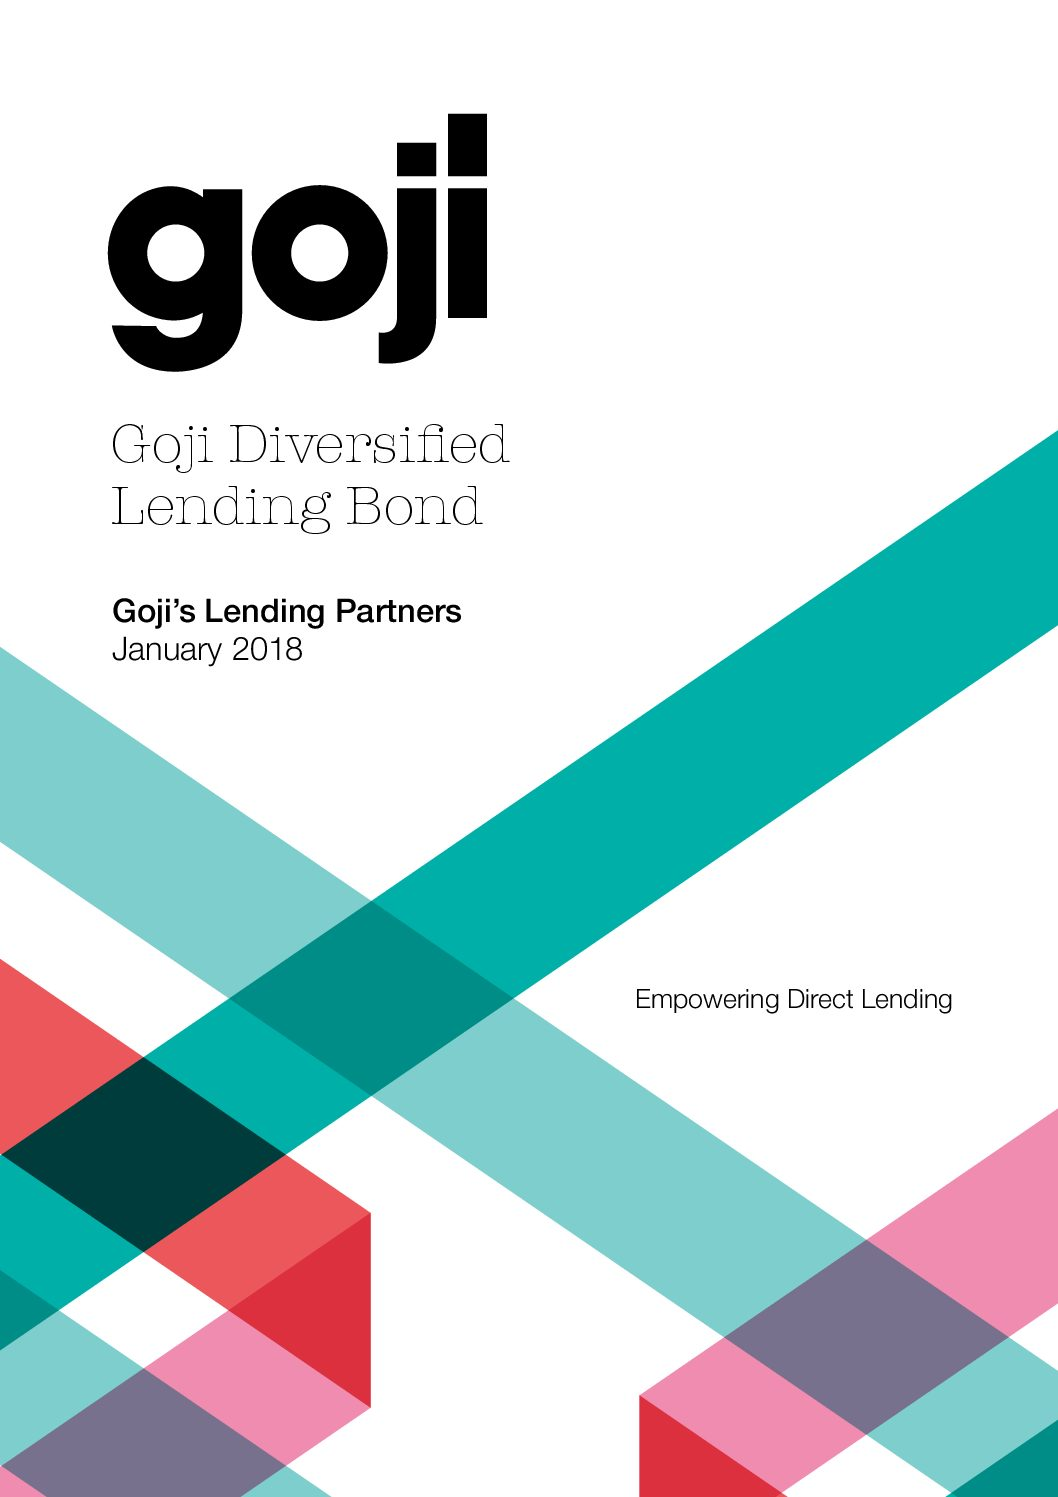 Goji's lending partners-Goji Direct Lending Investment Experts